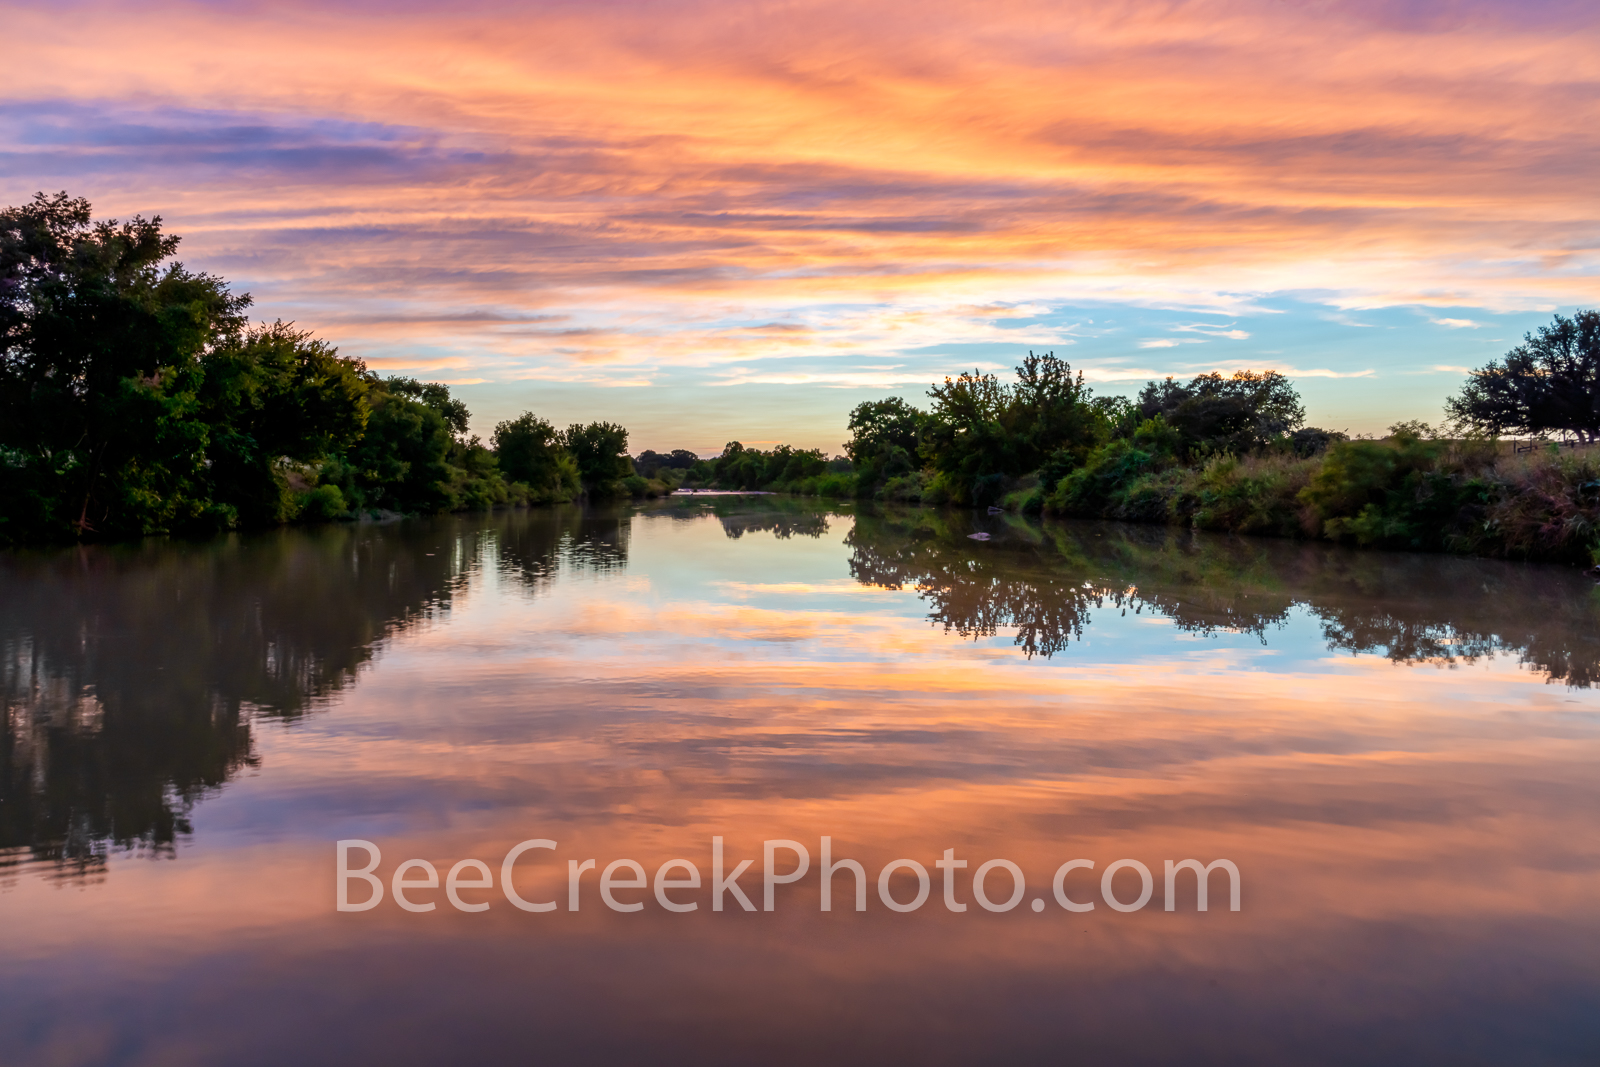 Vibrant Texas Hill Country Sunset - This was one of those wow sunset captures in the Texas hill country along the Pedernales...